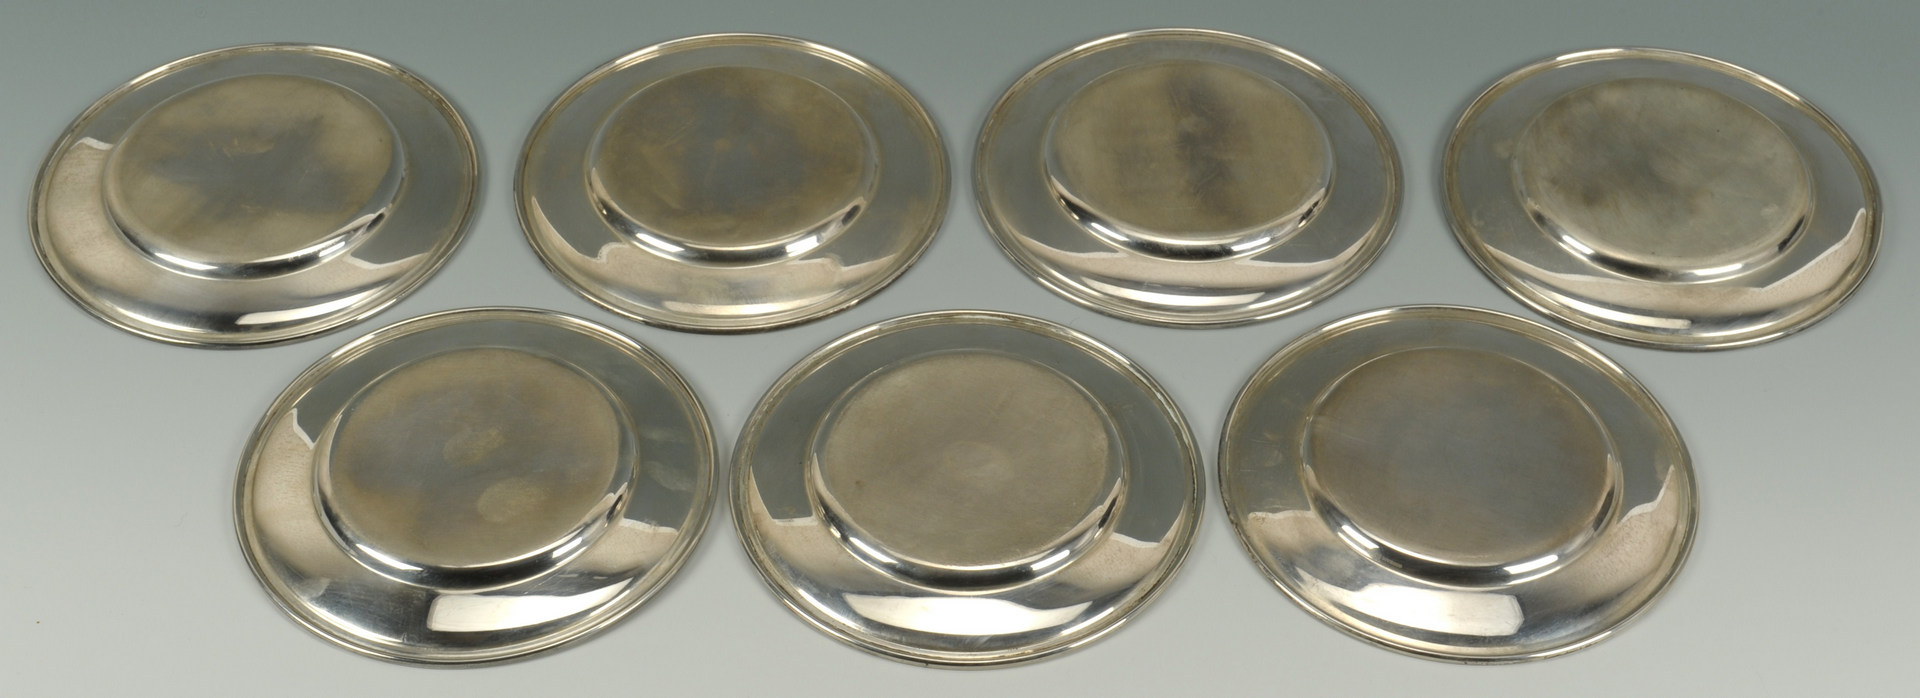 Lot 421: 7 Gorham Sterling Silver Bread Plates